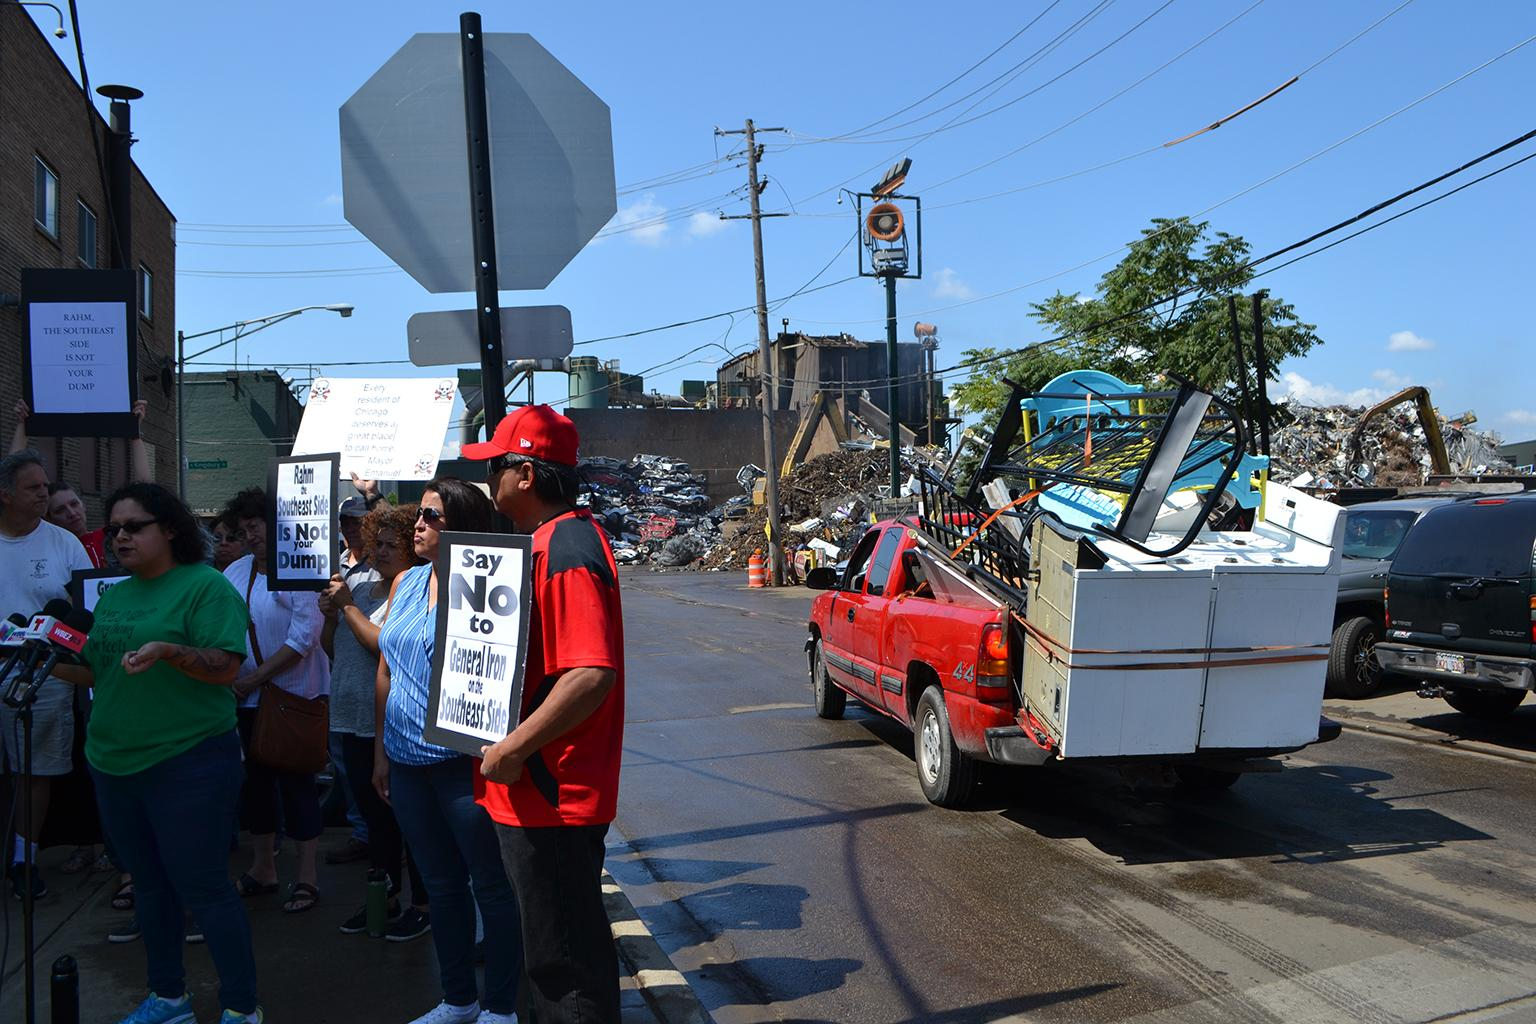 We Don't Want Your Trash': Residents Protest General Iron's